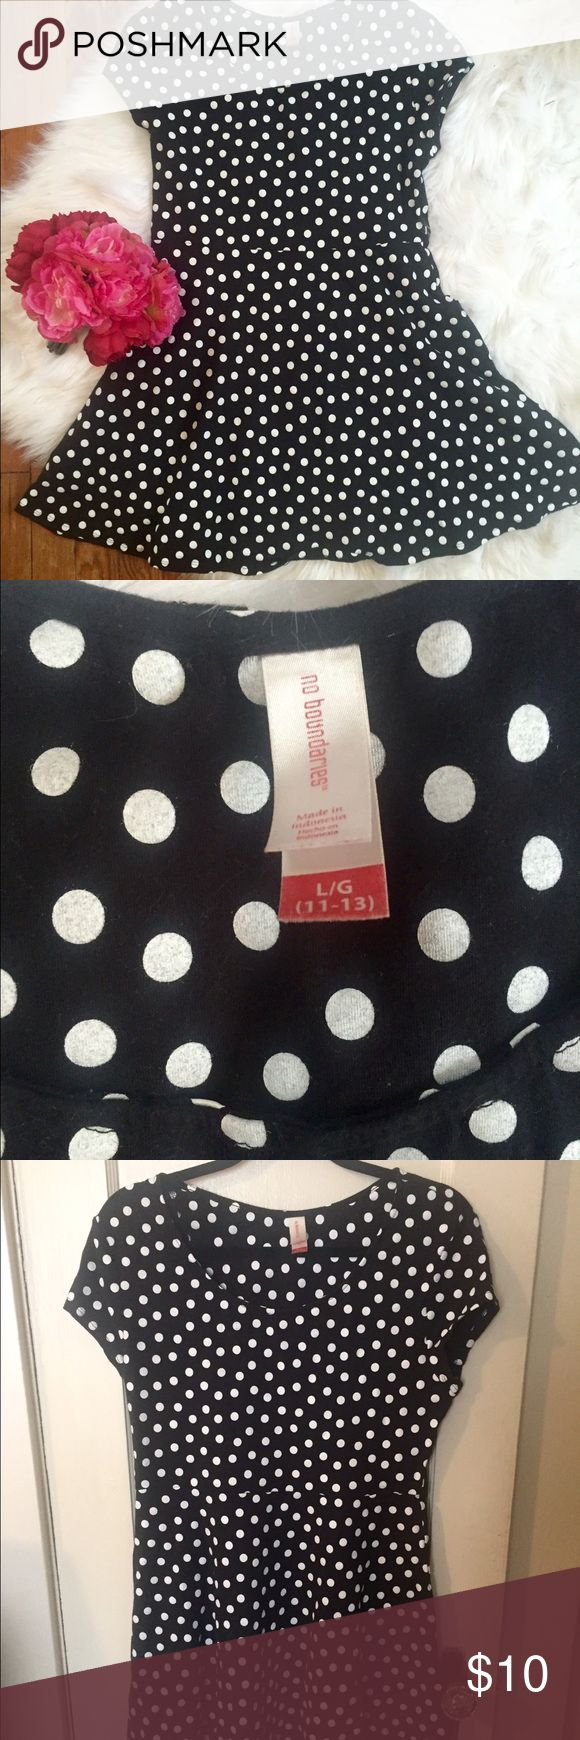 Polka Dot Dress No Boundaries brand. Size large (11-13), but fits like a medium short dress on an adult. 95% Cotton 5% Spandex, stretchy material. Very comfortable and great used condition! No Boundaries Dresses Mini